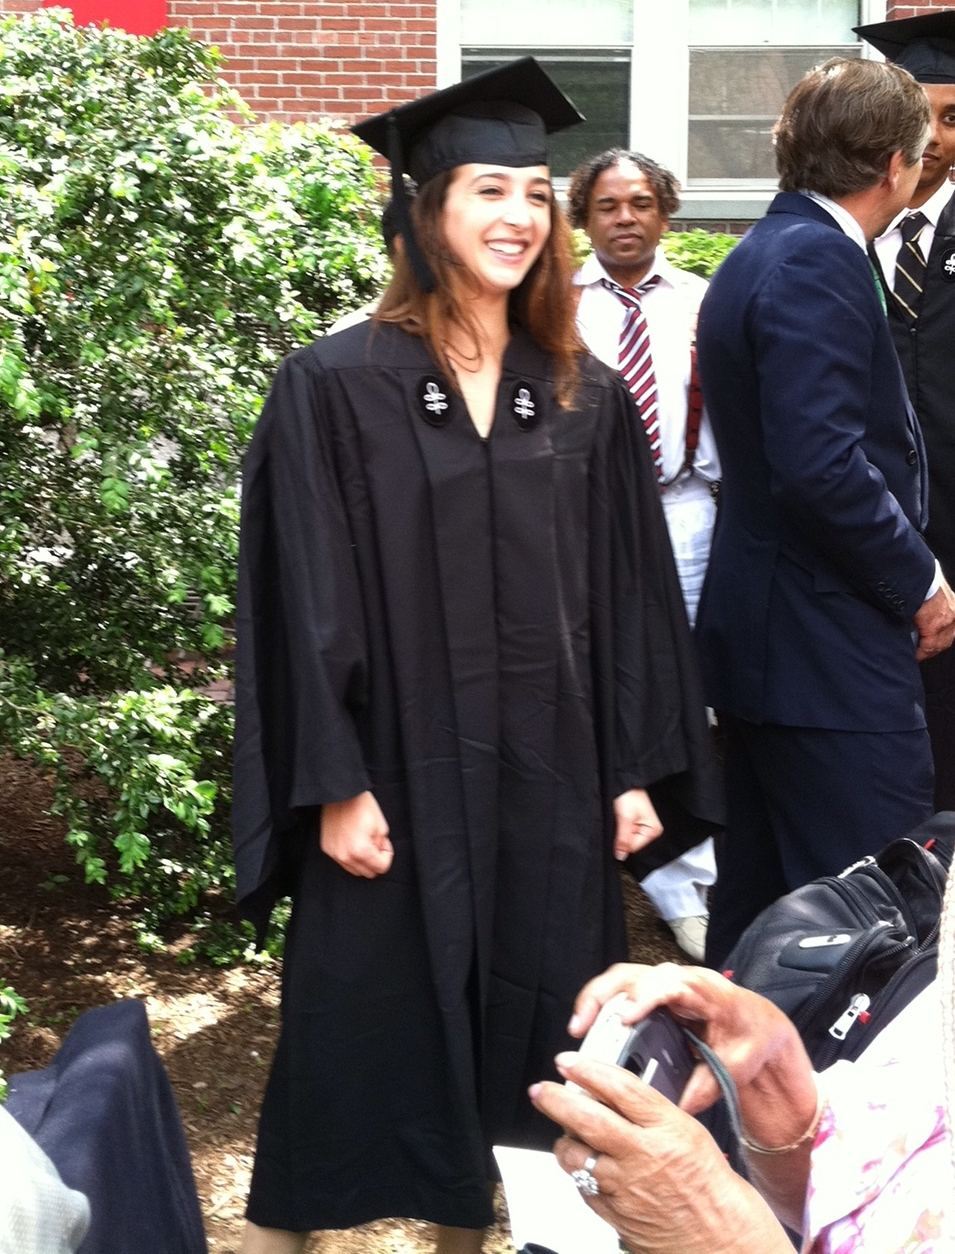 Flashback to graduation day for our Co-Founder & COO,  Lindsay ! The typical Harvard student.